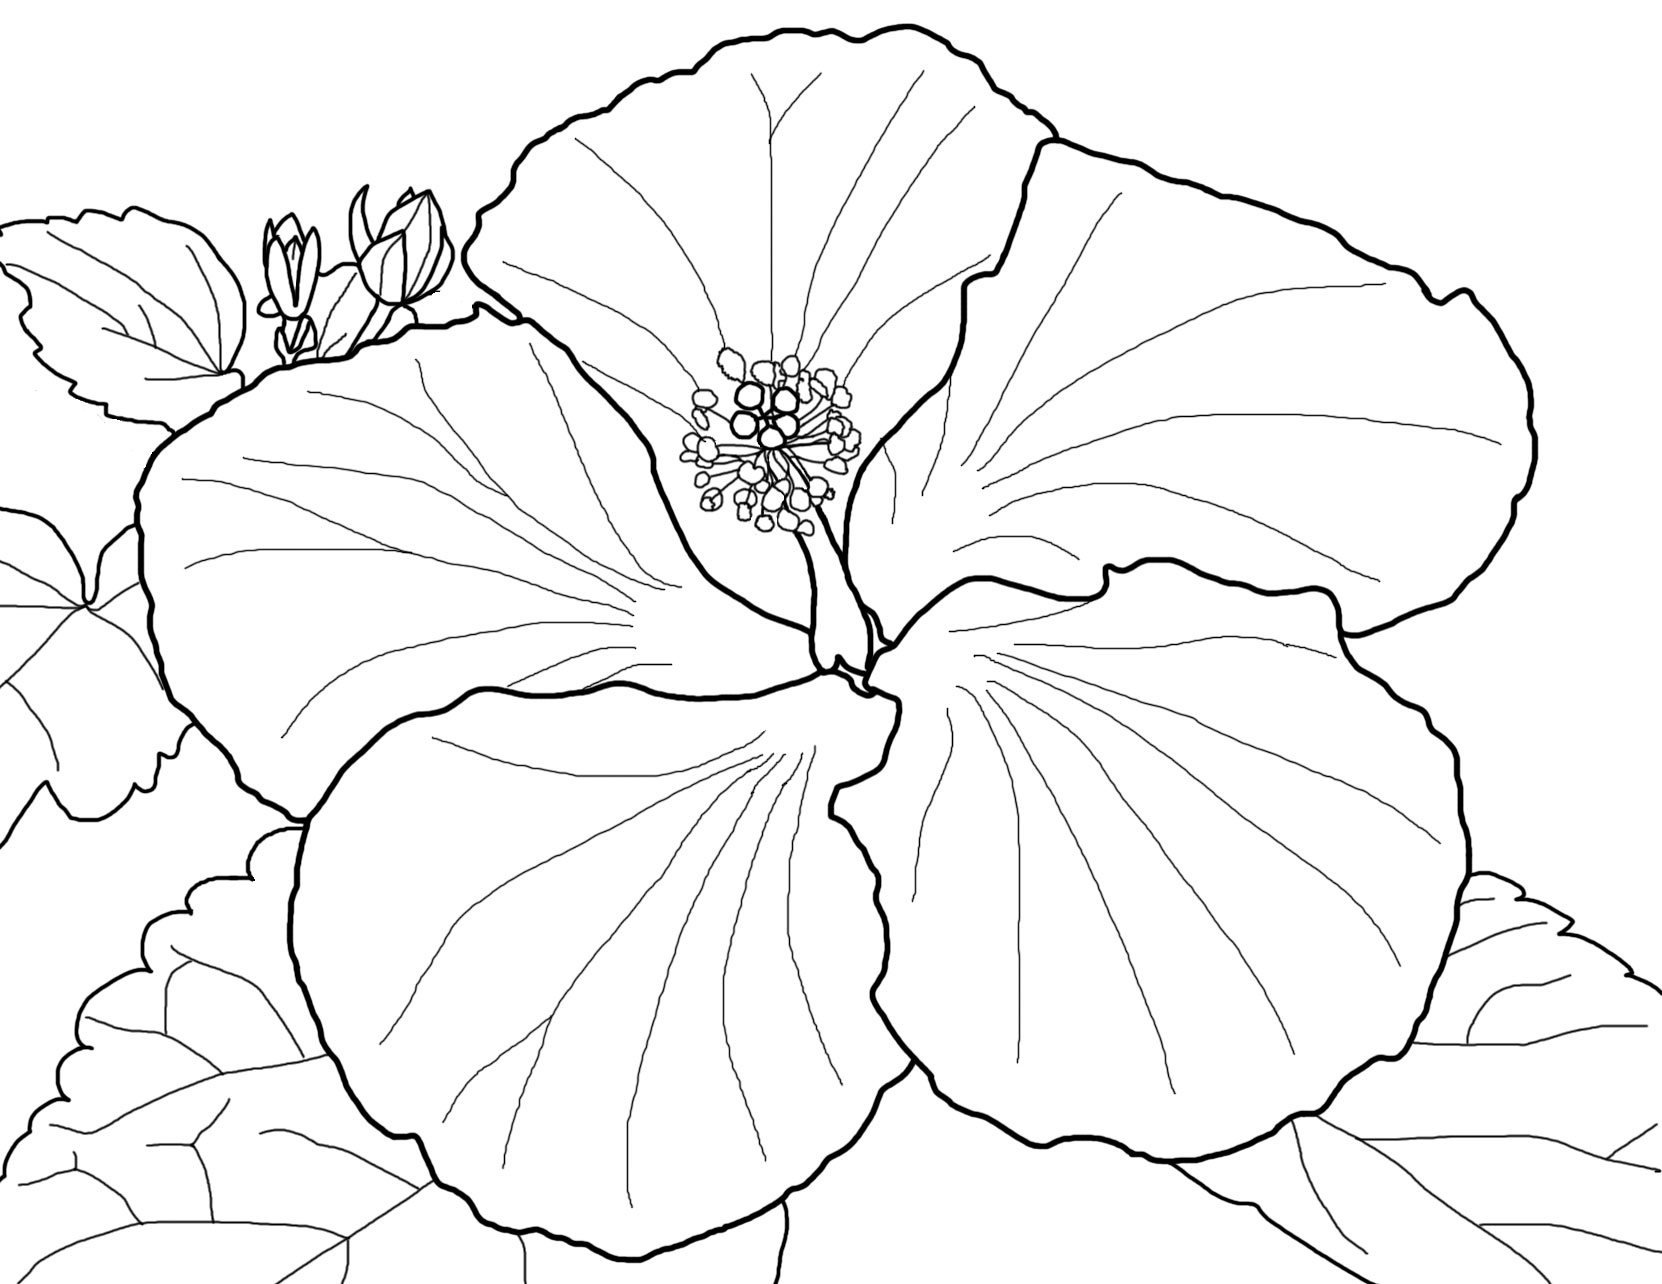 Spring flowers drawing at getdrawings free for personal use 1662x1284 spring flowers coloring page beautiful blossoms mightylinksfo